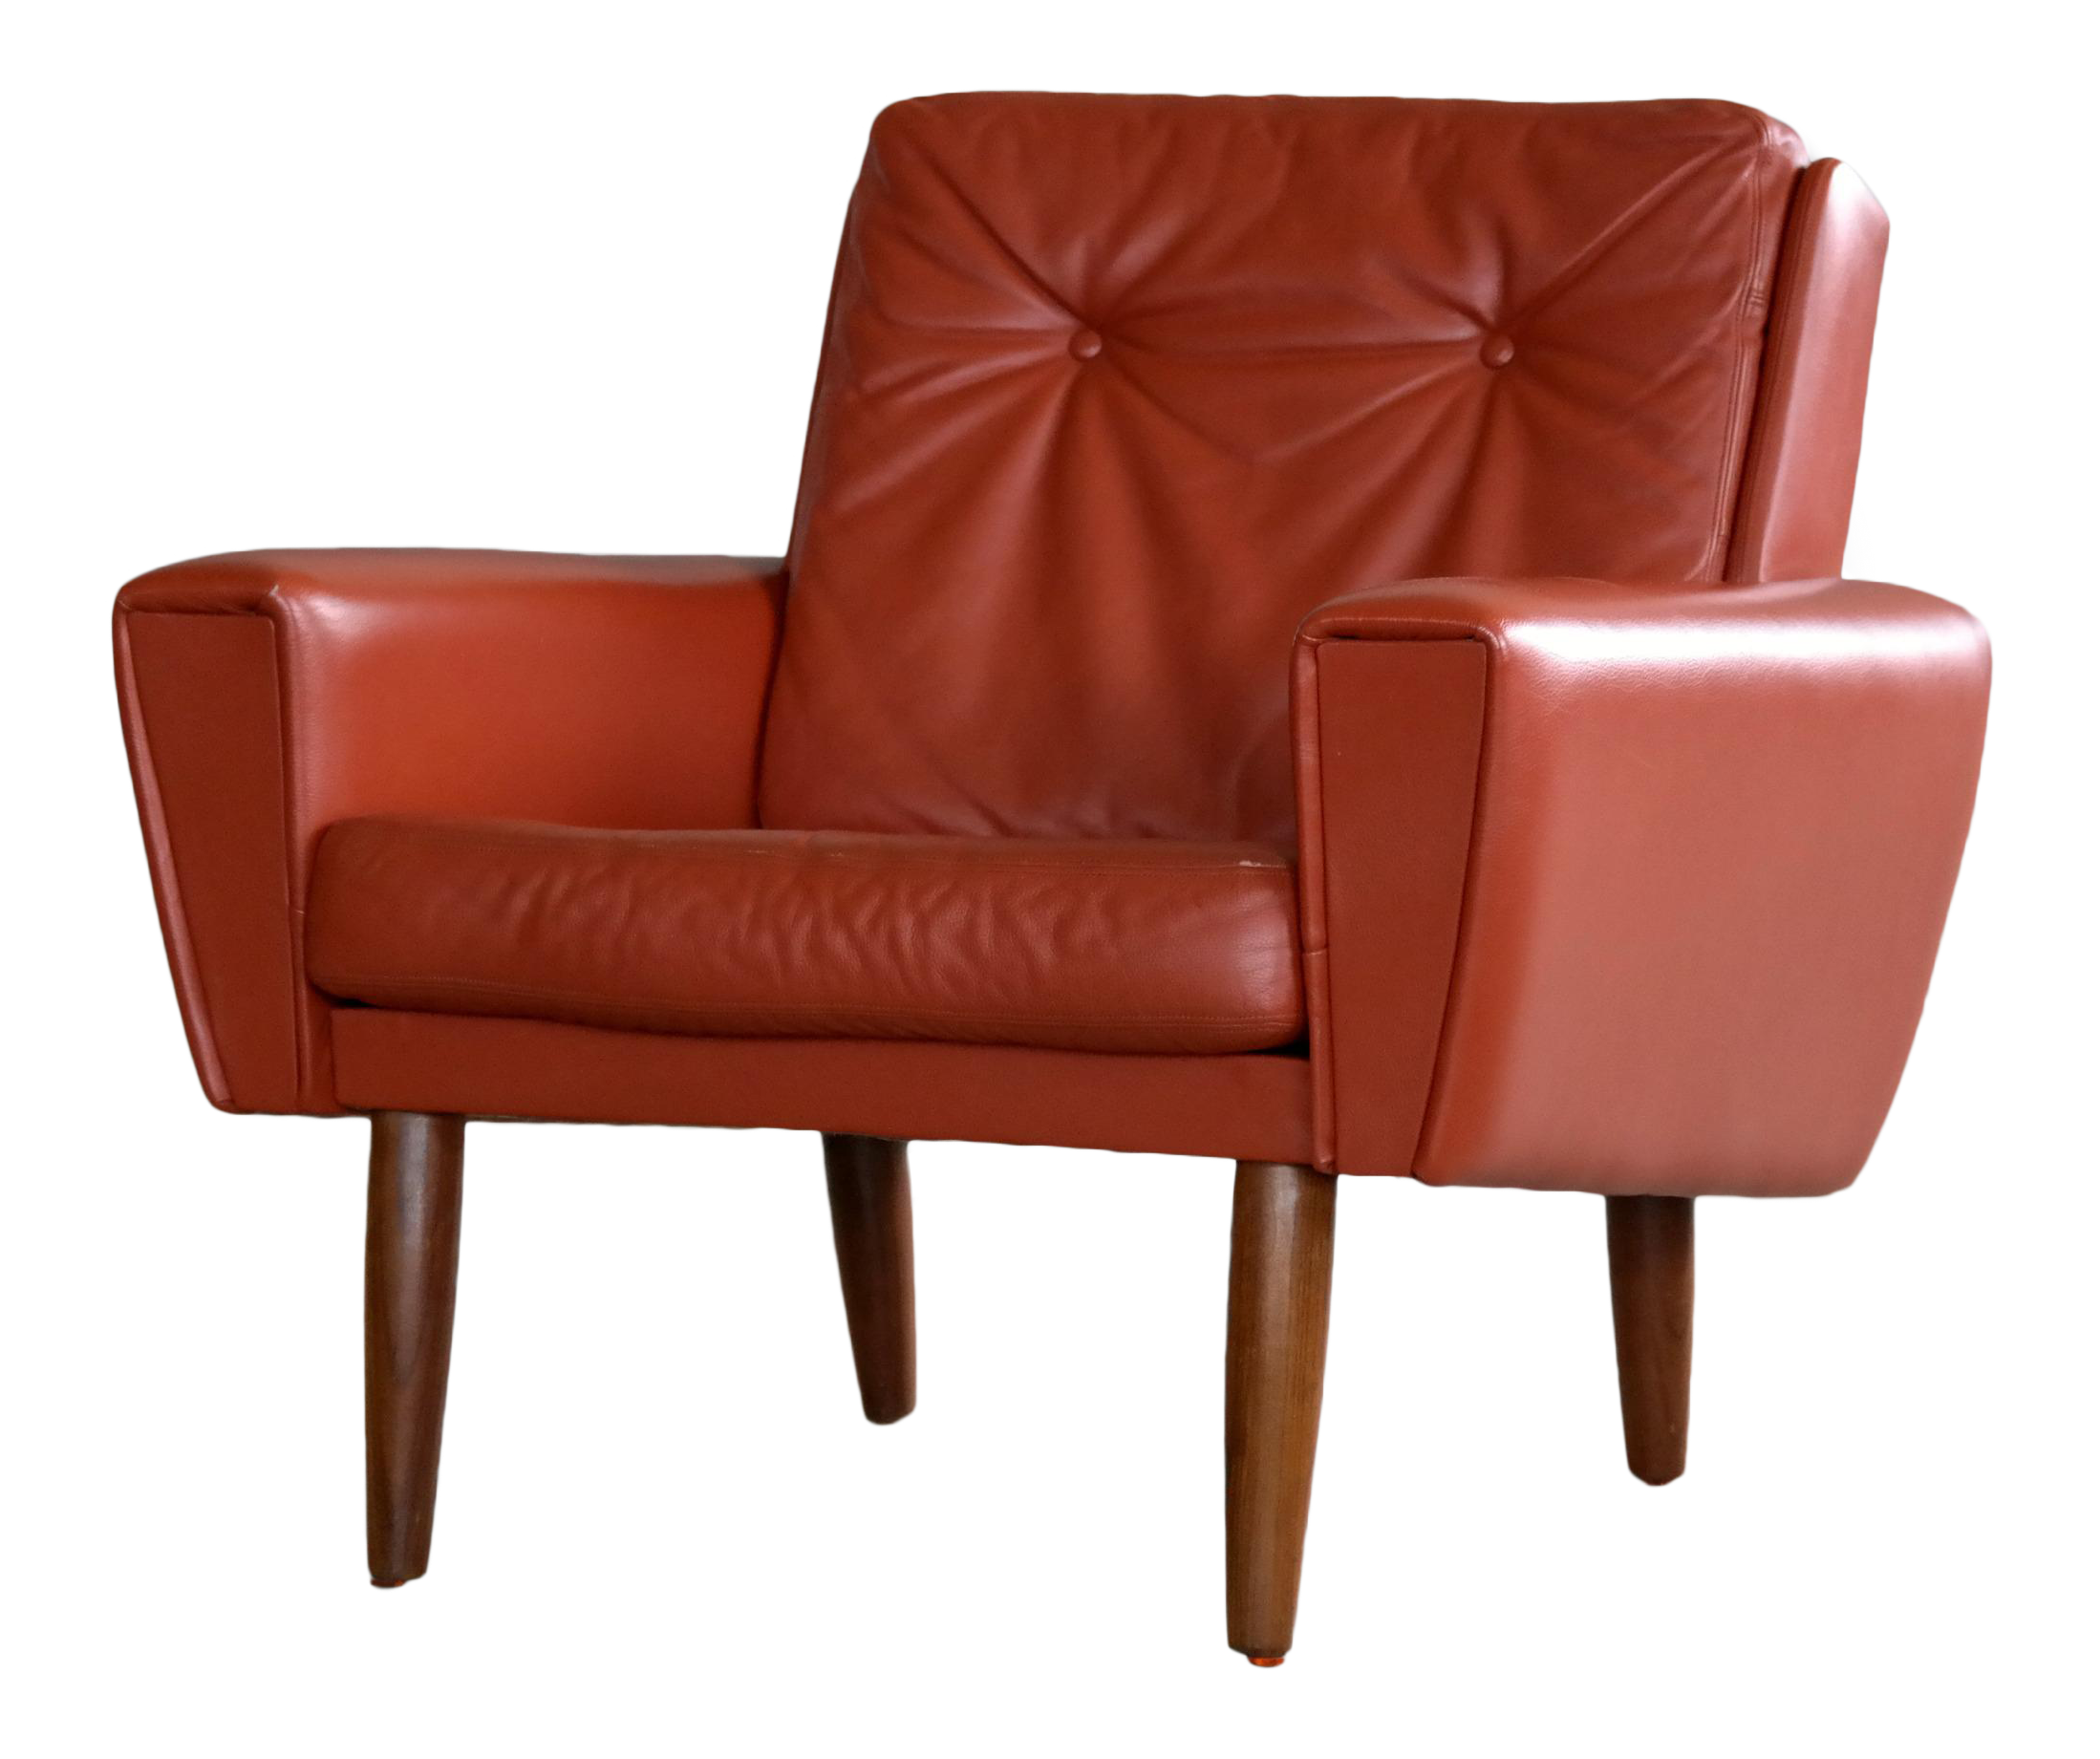 Danish Mid-Century Lounge Chair in Red Leather Manner of Illum Wikkelso | Chairish  sc 1 st  Chairish & Danish Mid-Century Lounge Chair in Red Leather Manner of Illum ...